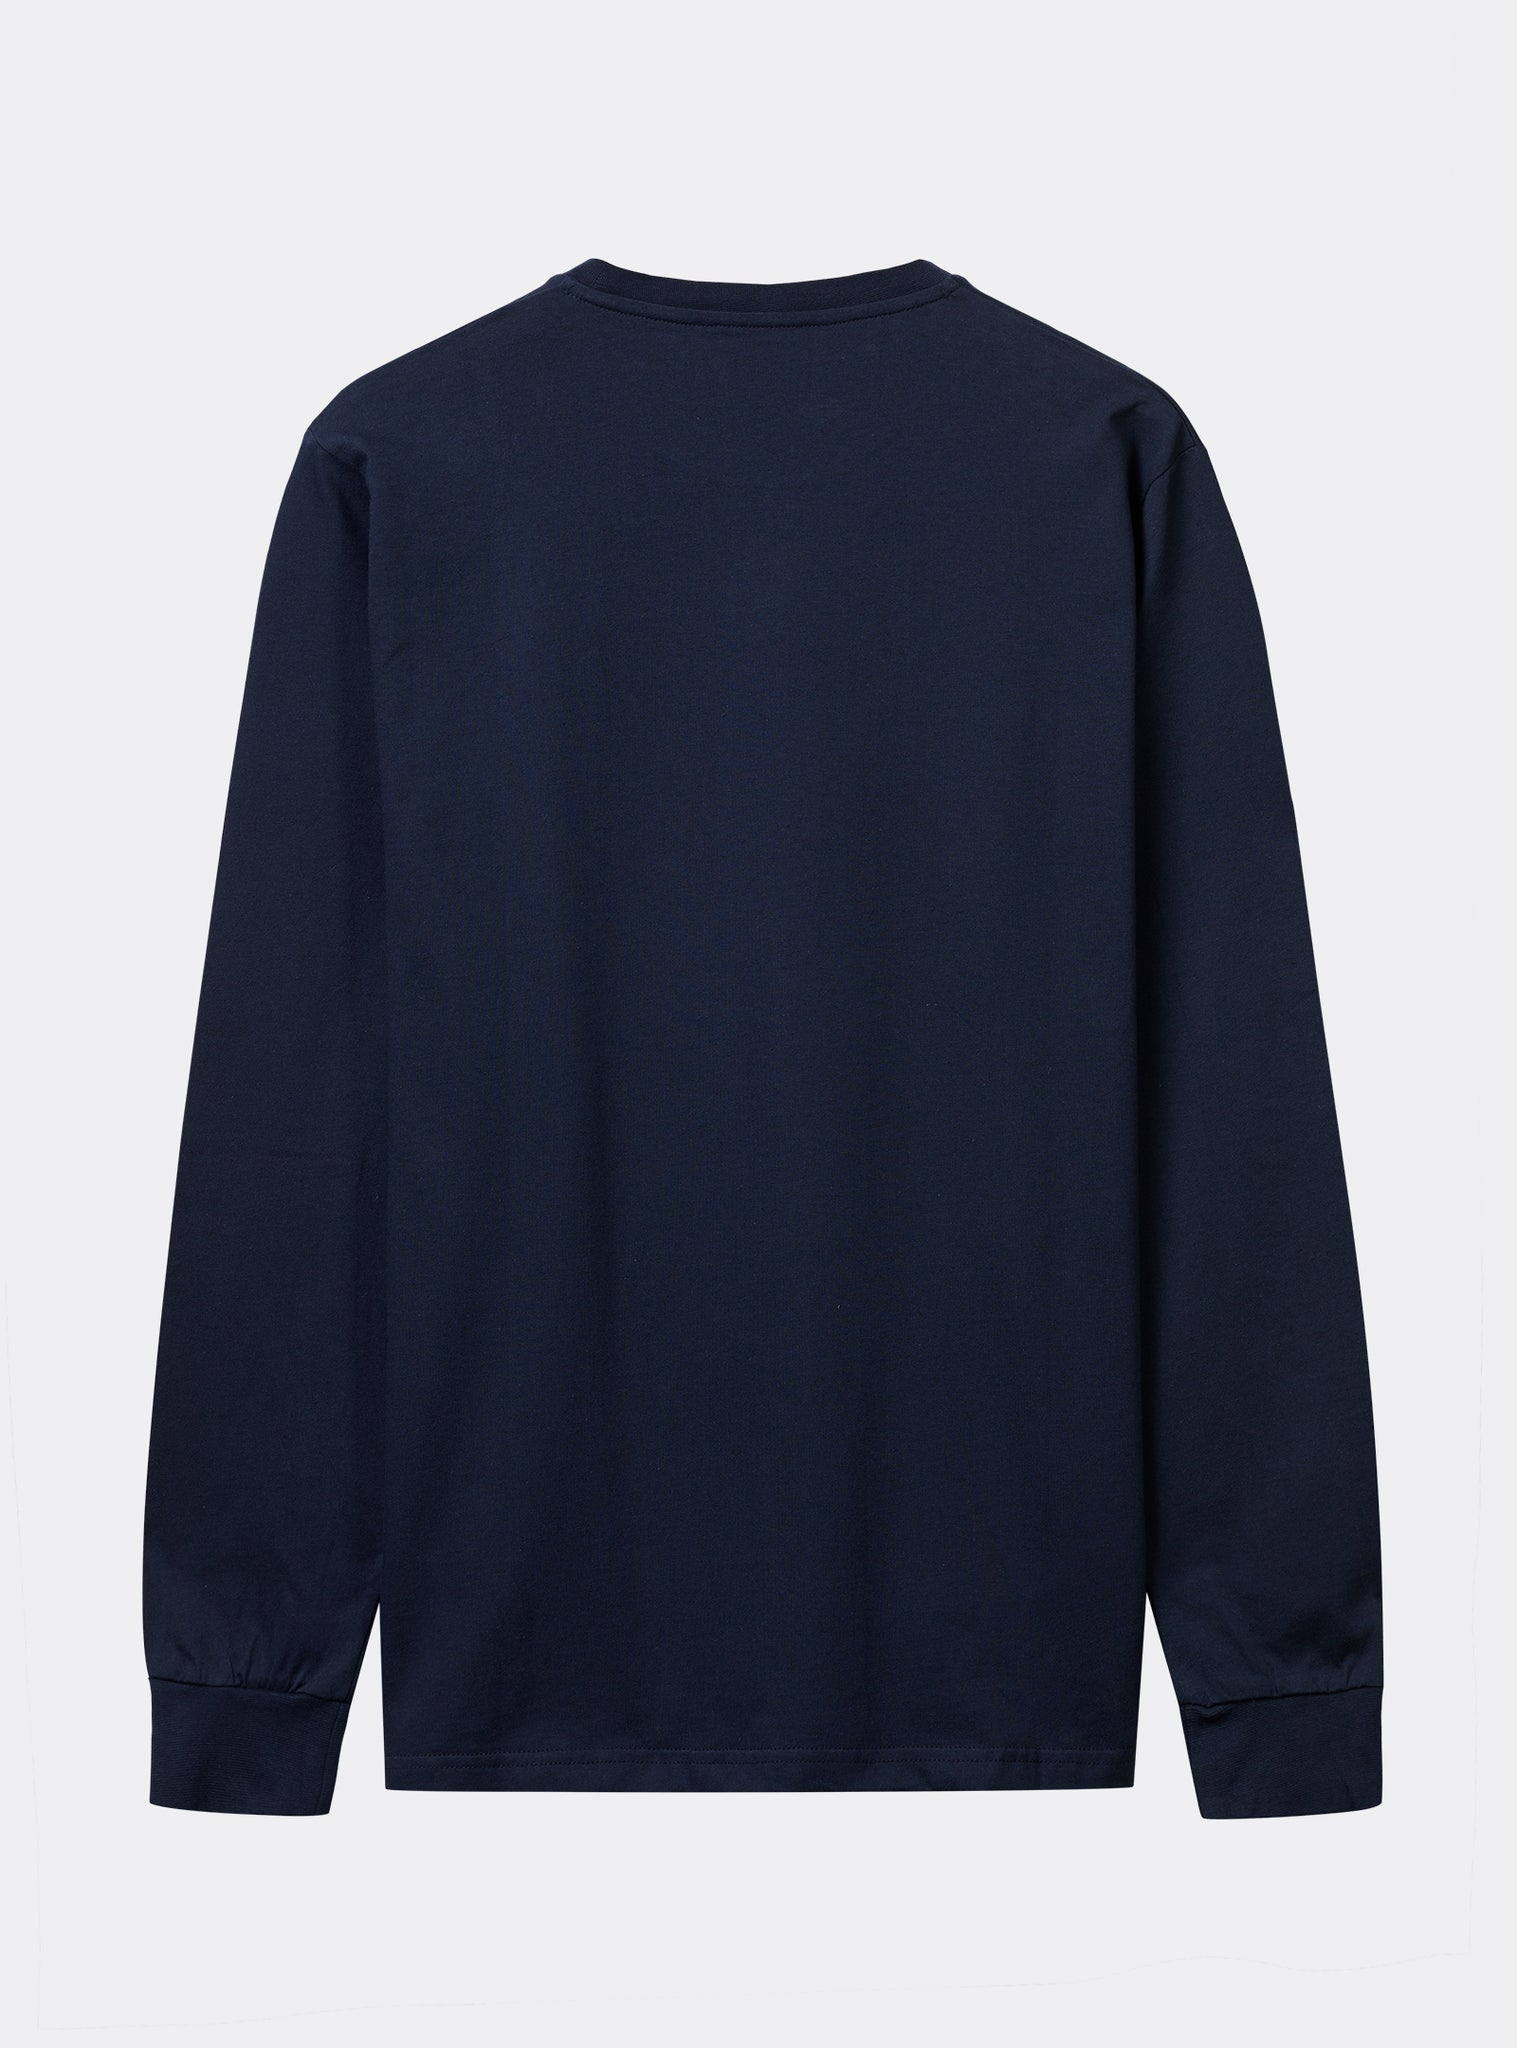 Techno 2 Tee L/s Dark Blue